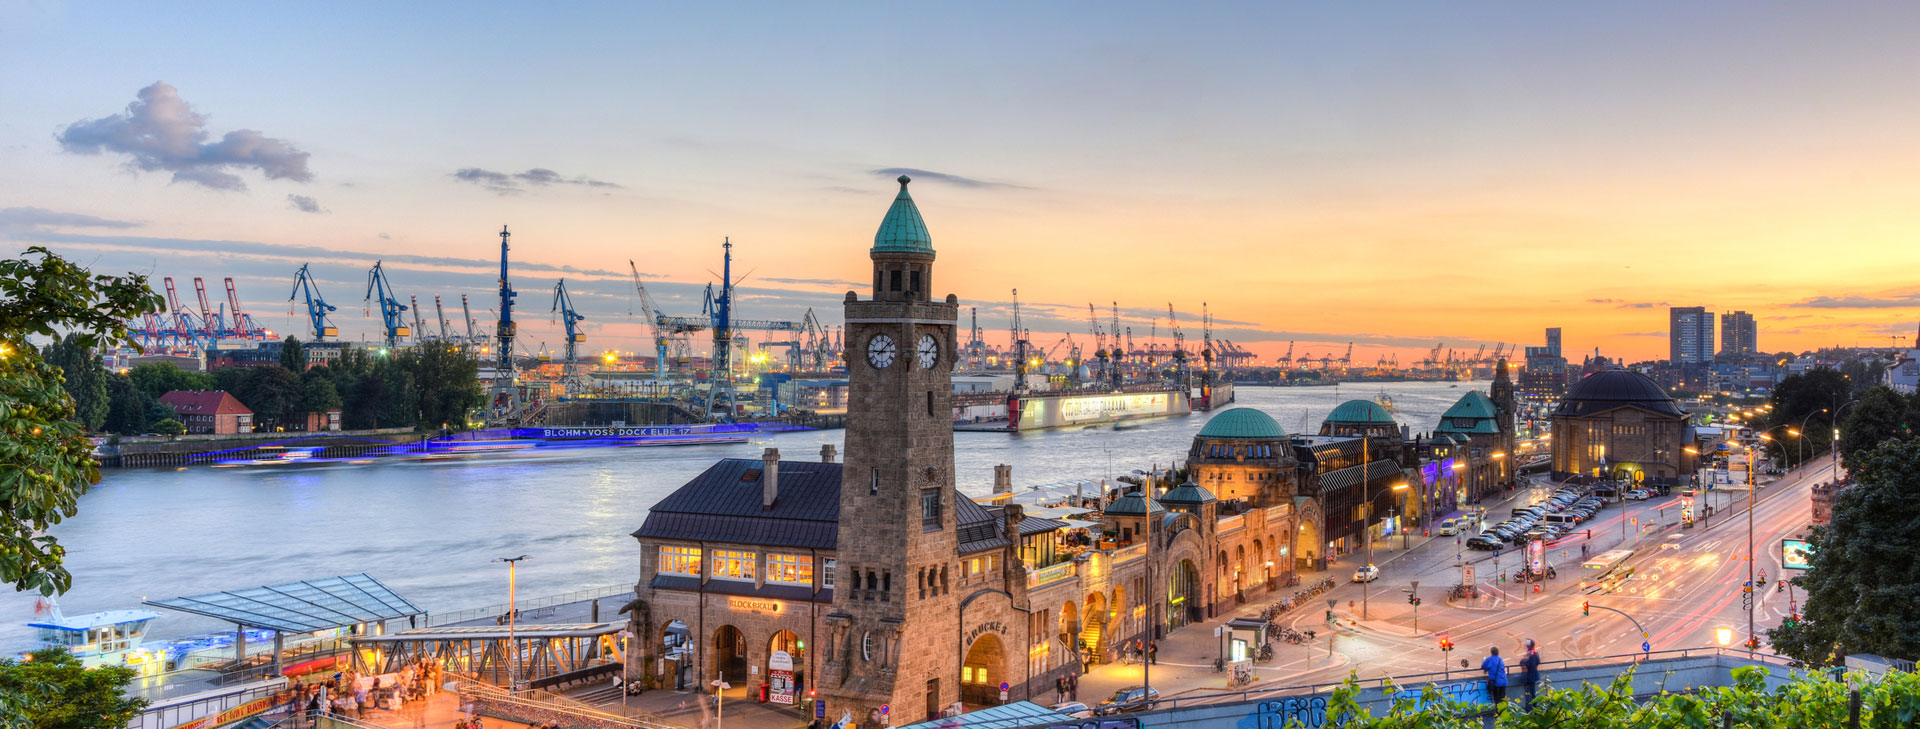 Seatrade Europe in Hamburg